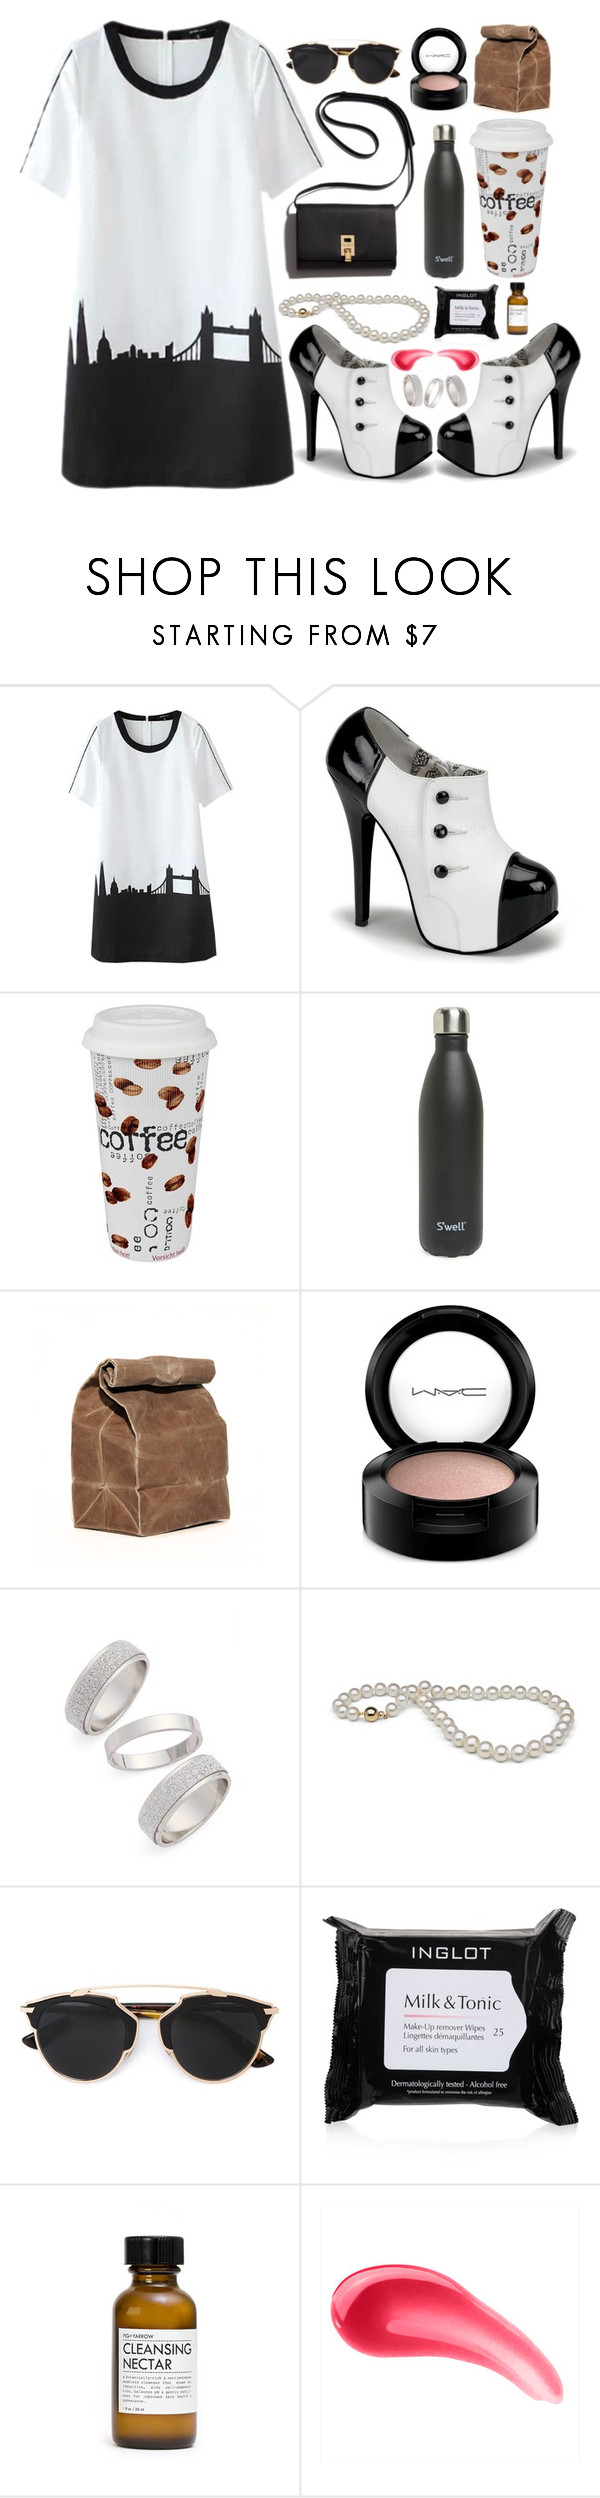 """Untitled #255"" by lunarose74 ❤ liked on Polyvore featuring moda, Könitz, S'well, MAC Cosmetics, Topshop, Christian Dior, Inglot, Fig+Yarrow, Too Faced Cosmetics e women's clothing"